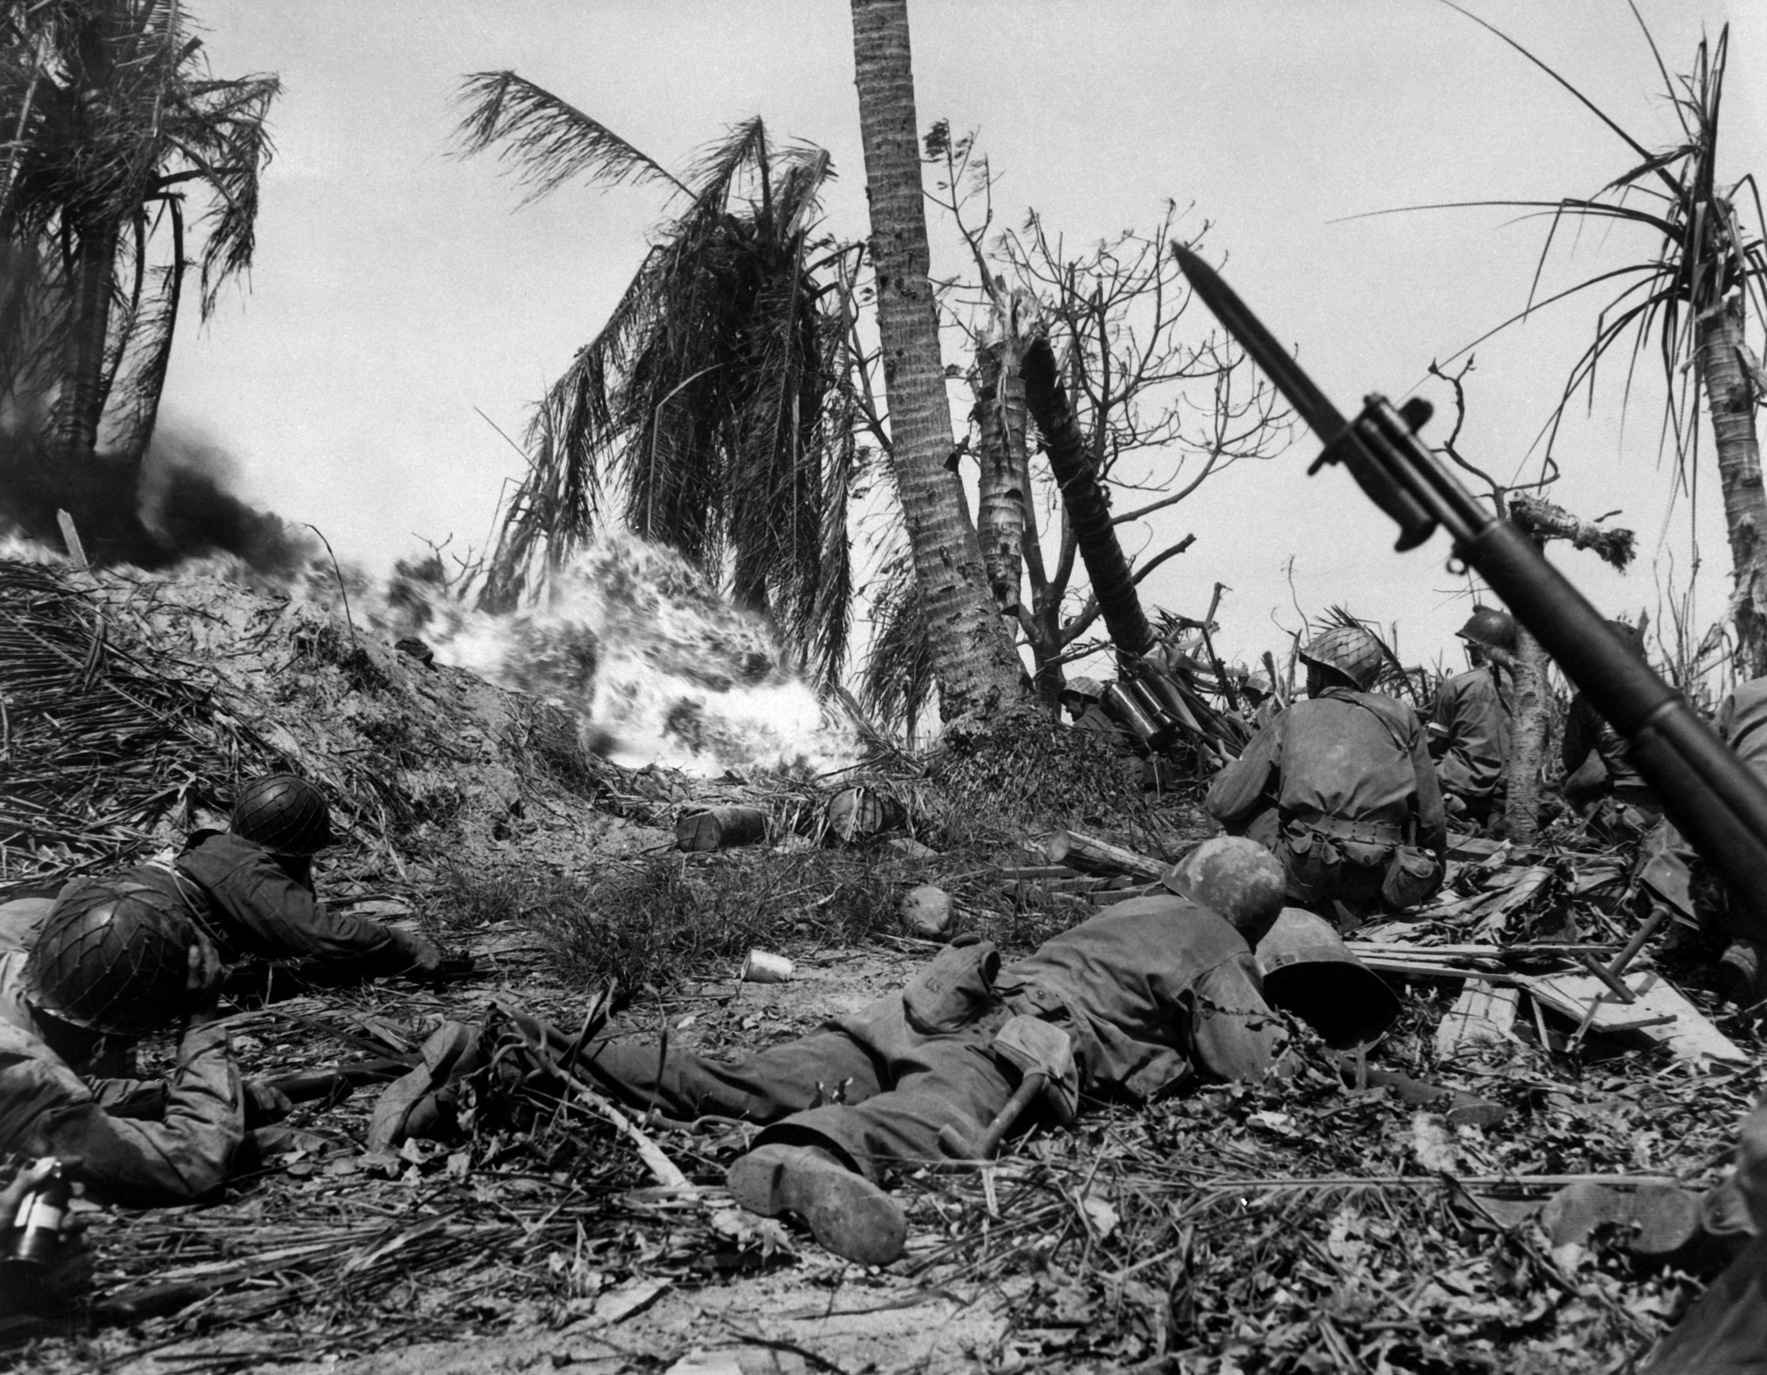 Battle of Kwajalein 75th Anniversary Commemoration at the WWII Memorial image